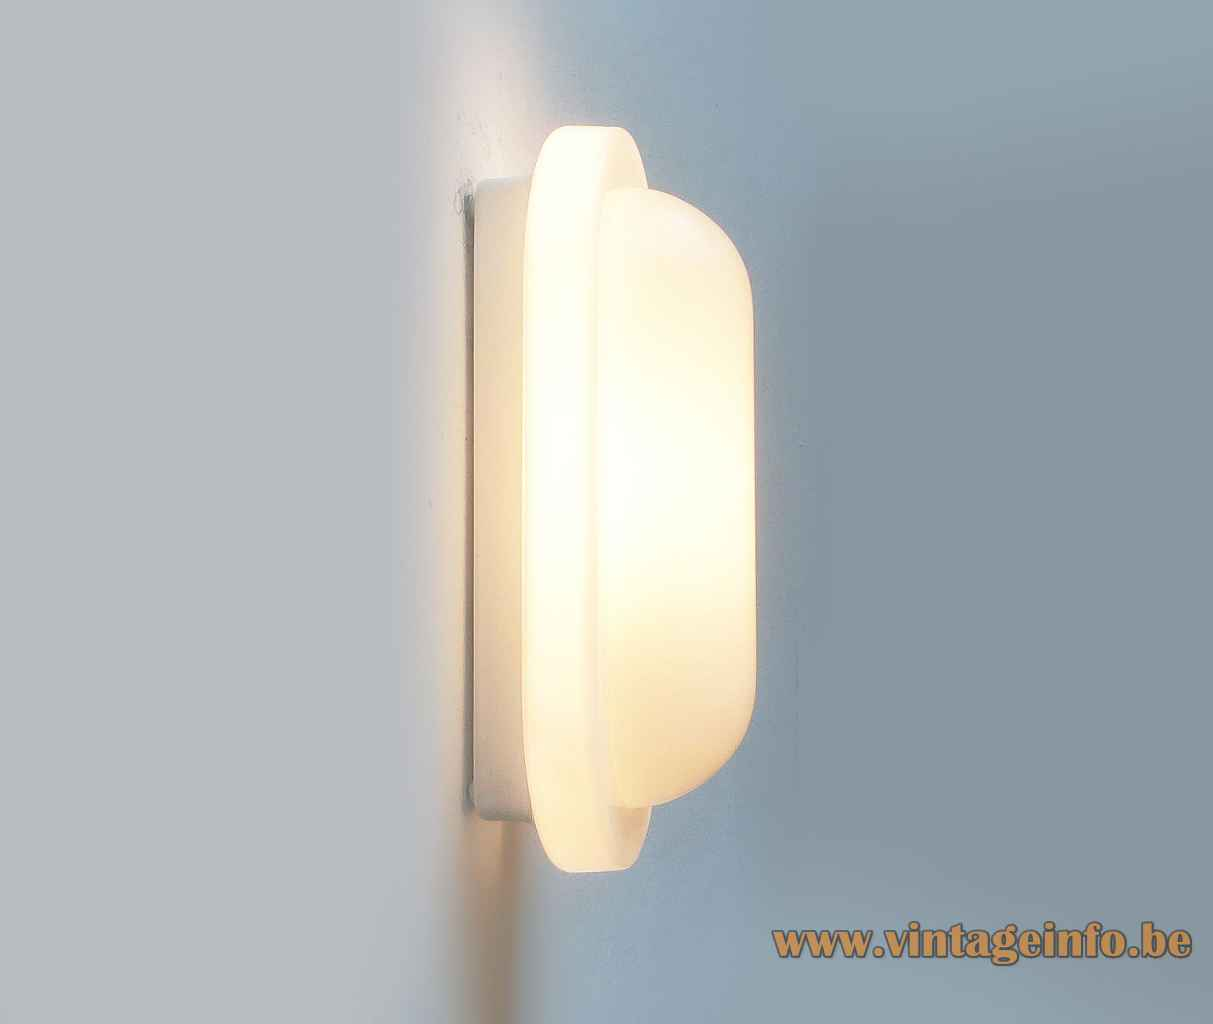 Peill + Putzler oval wall lamp white opal glass lampshade 1970s 1980s Germany E14 socket